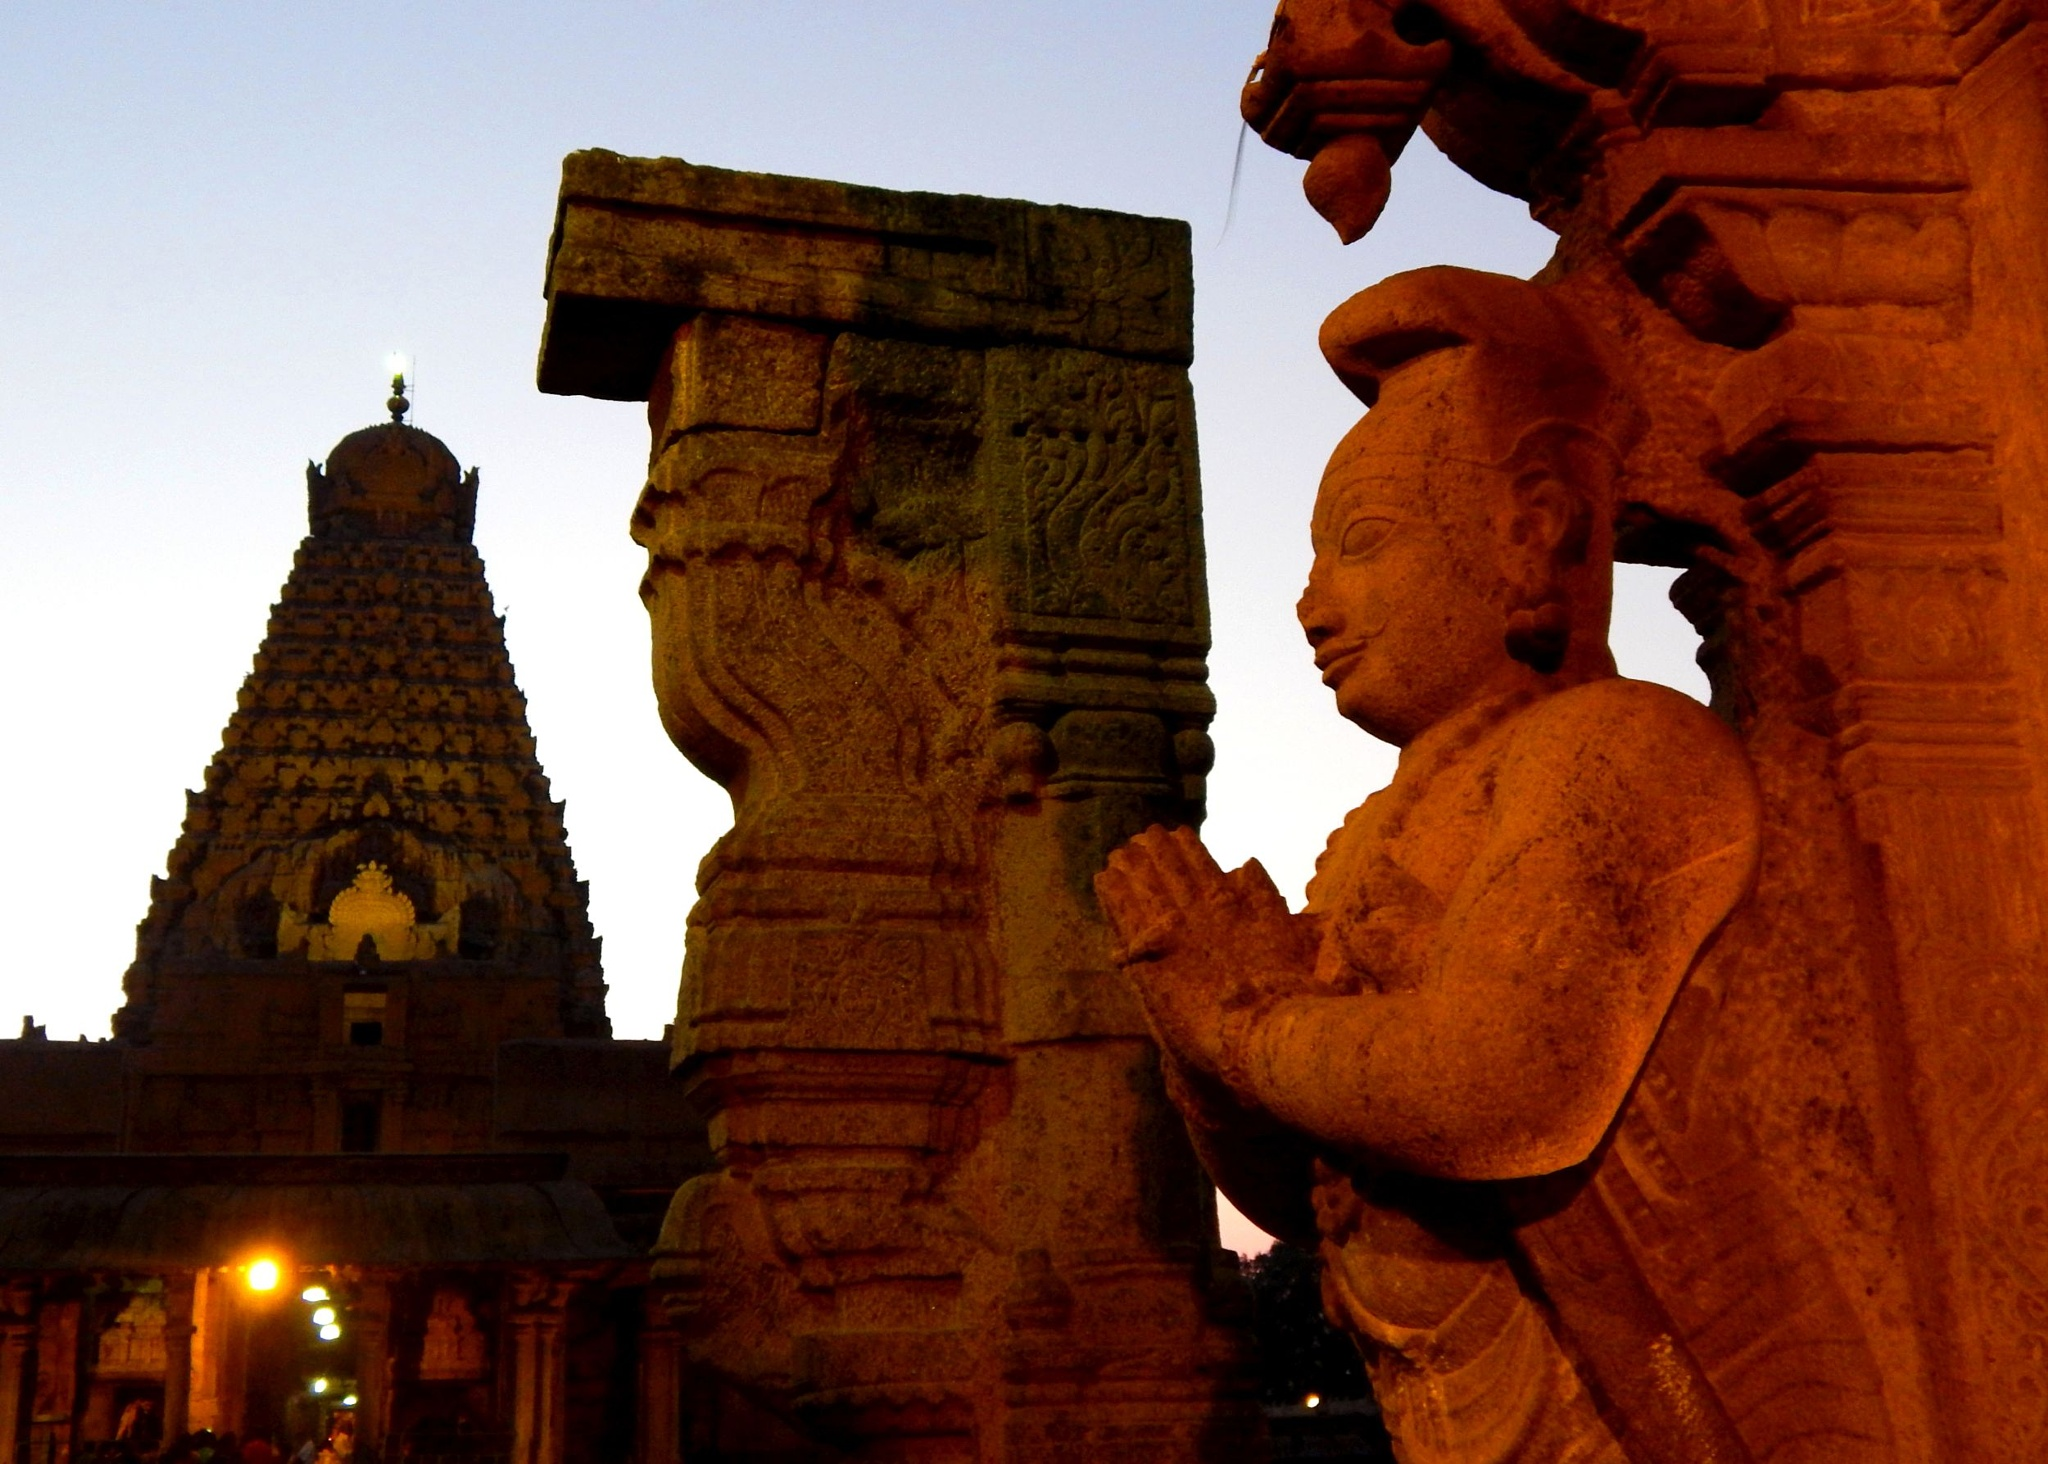 temple details at dusk by Aritra ghosh